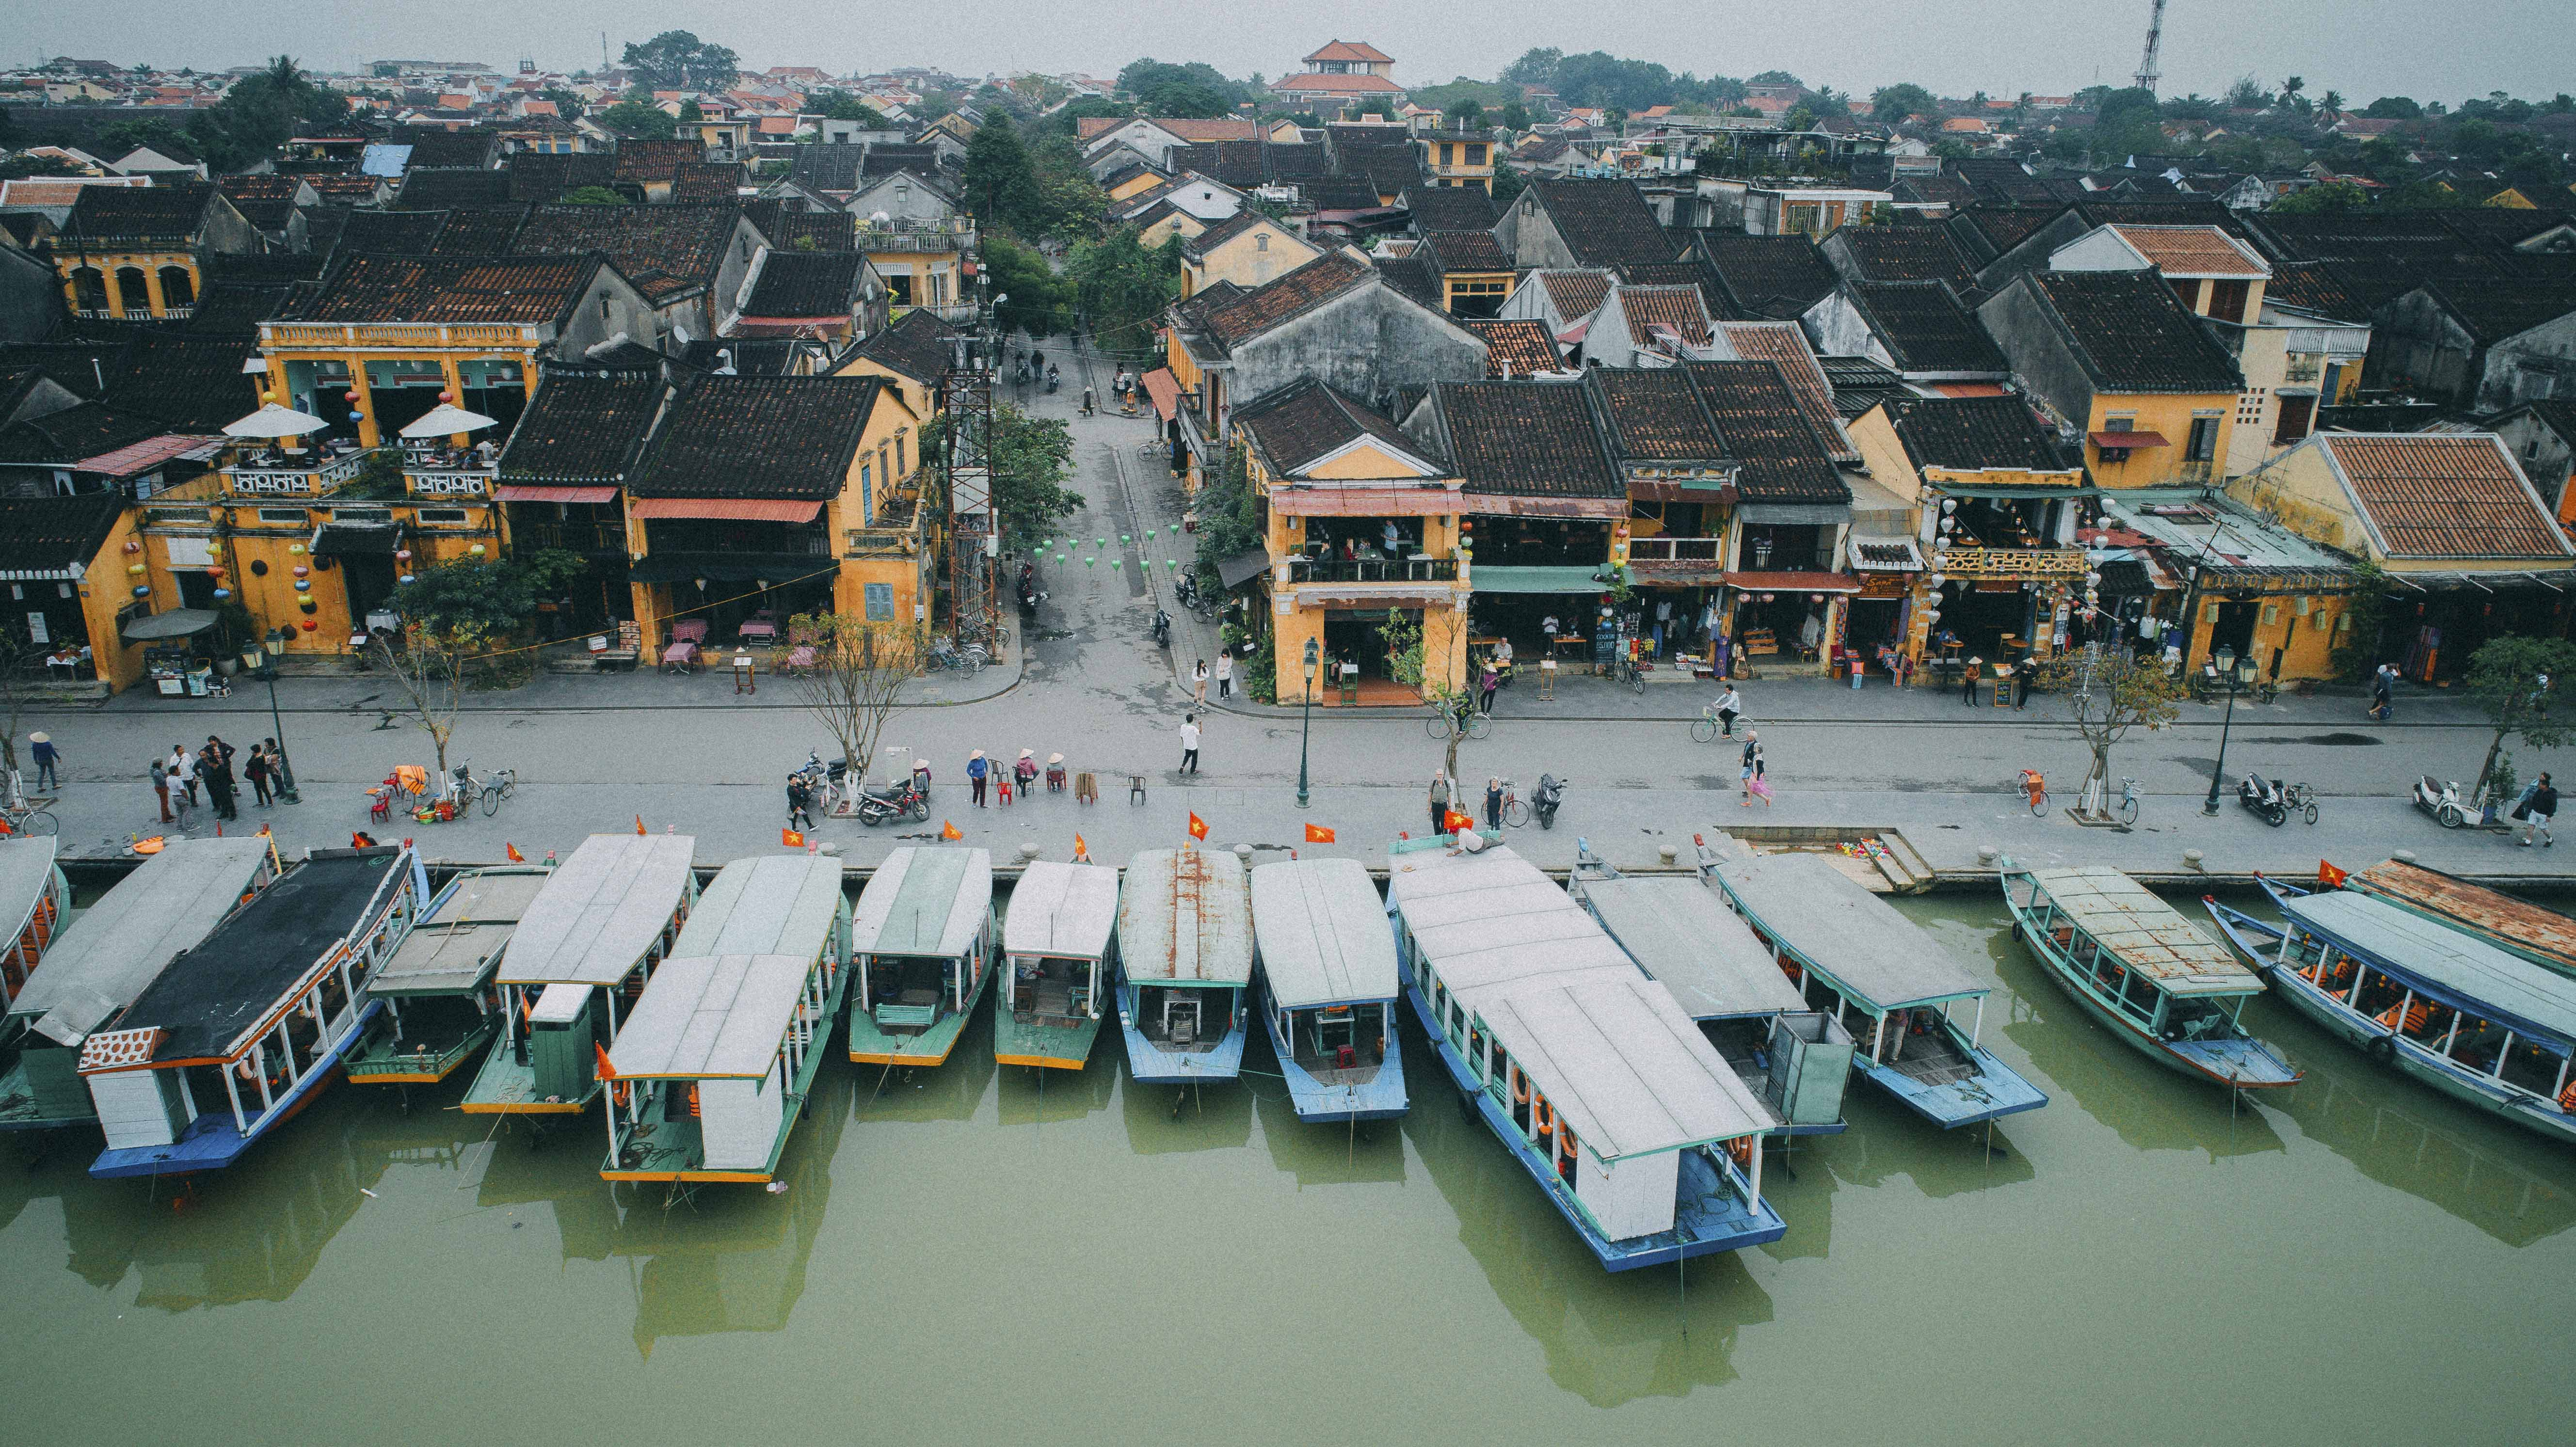 Hoi An – The Best City In The World 2019!